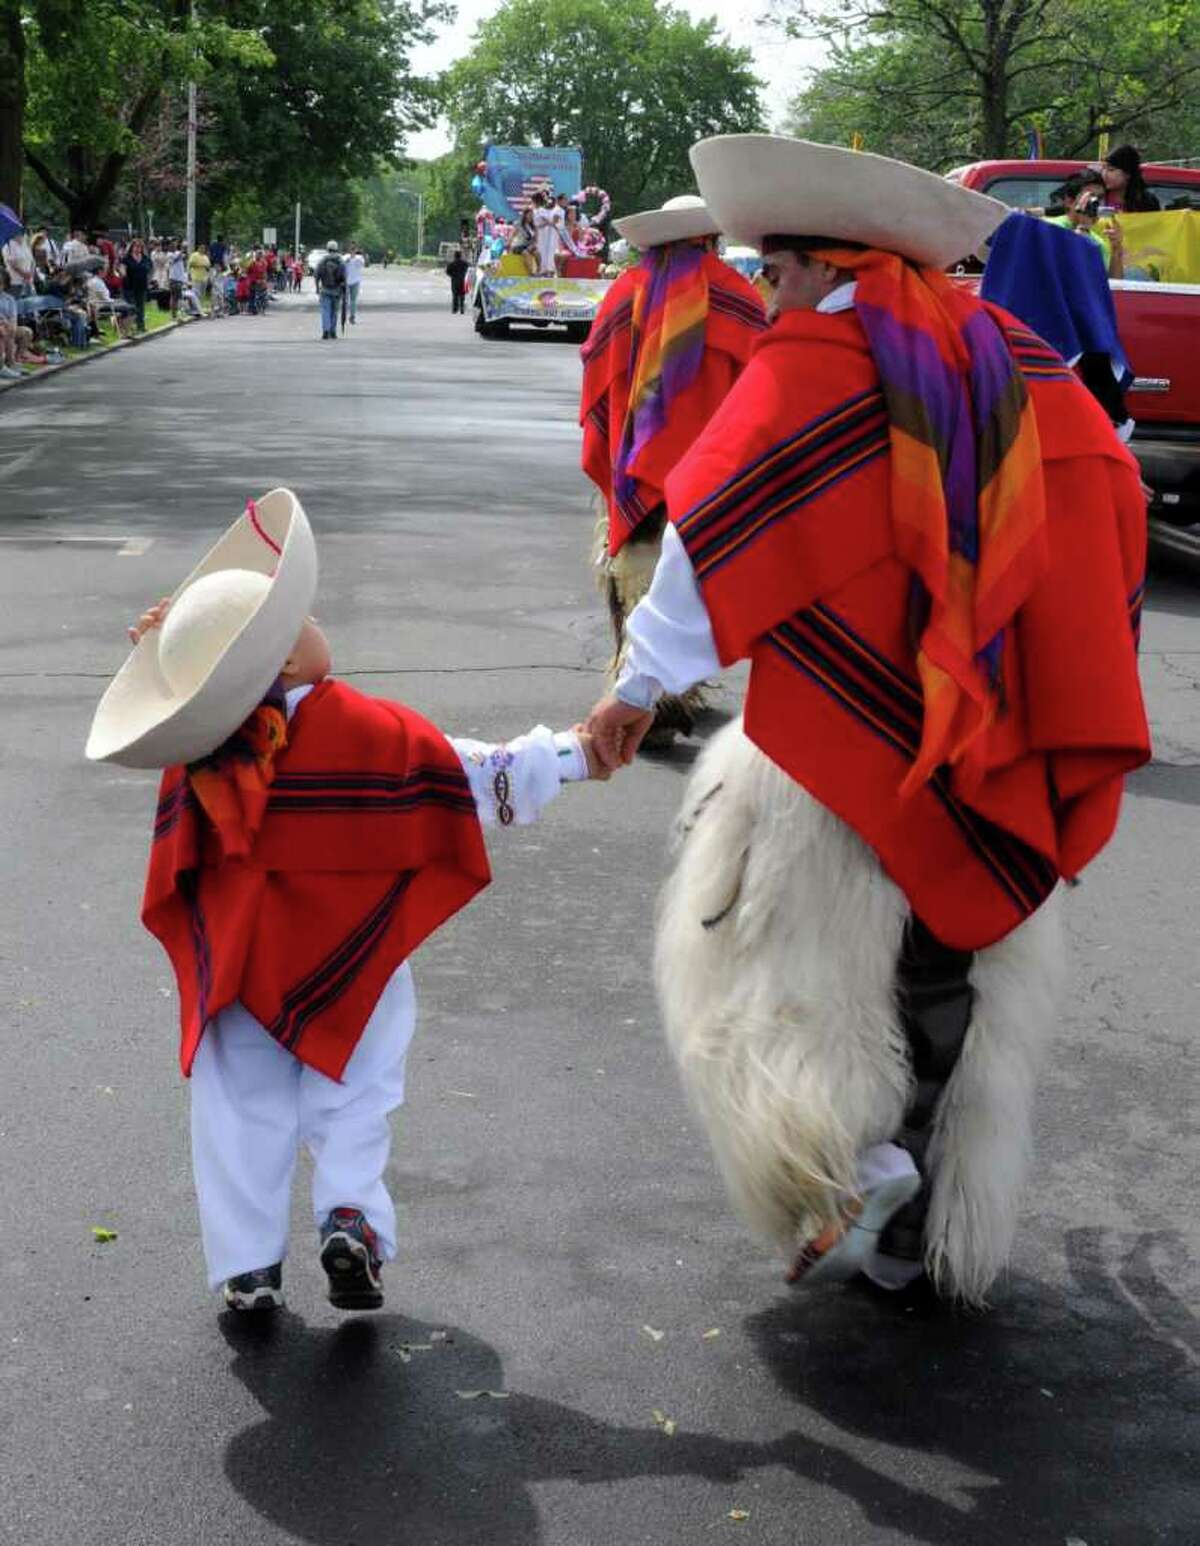 Rodrigo Rivera, 3, and his father Angel, both of Danbury, dance in the Danbury Memorial Day Parade on Monday May 30, 2011 with the Sumac Pakarina, traditional Equadorian dancers.